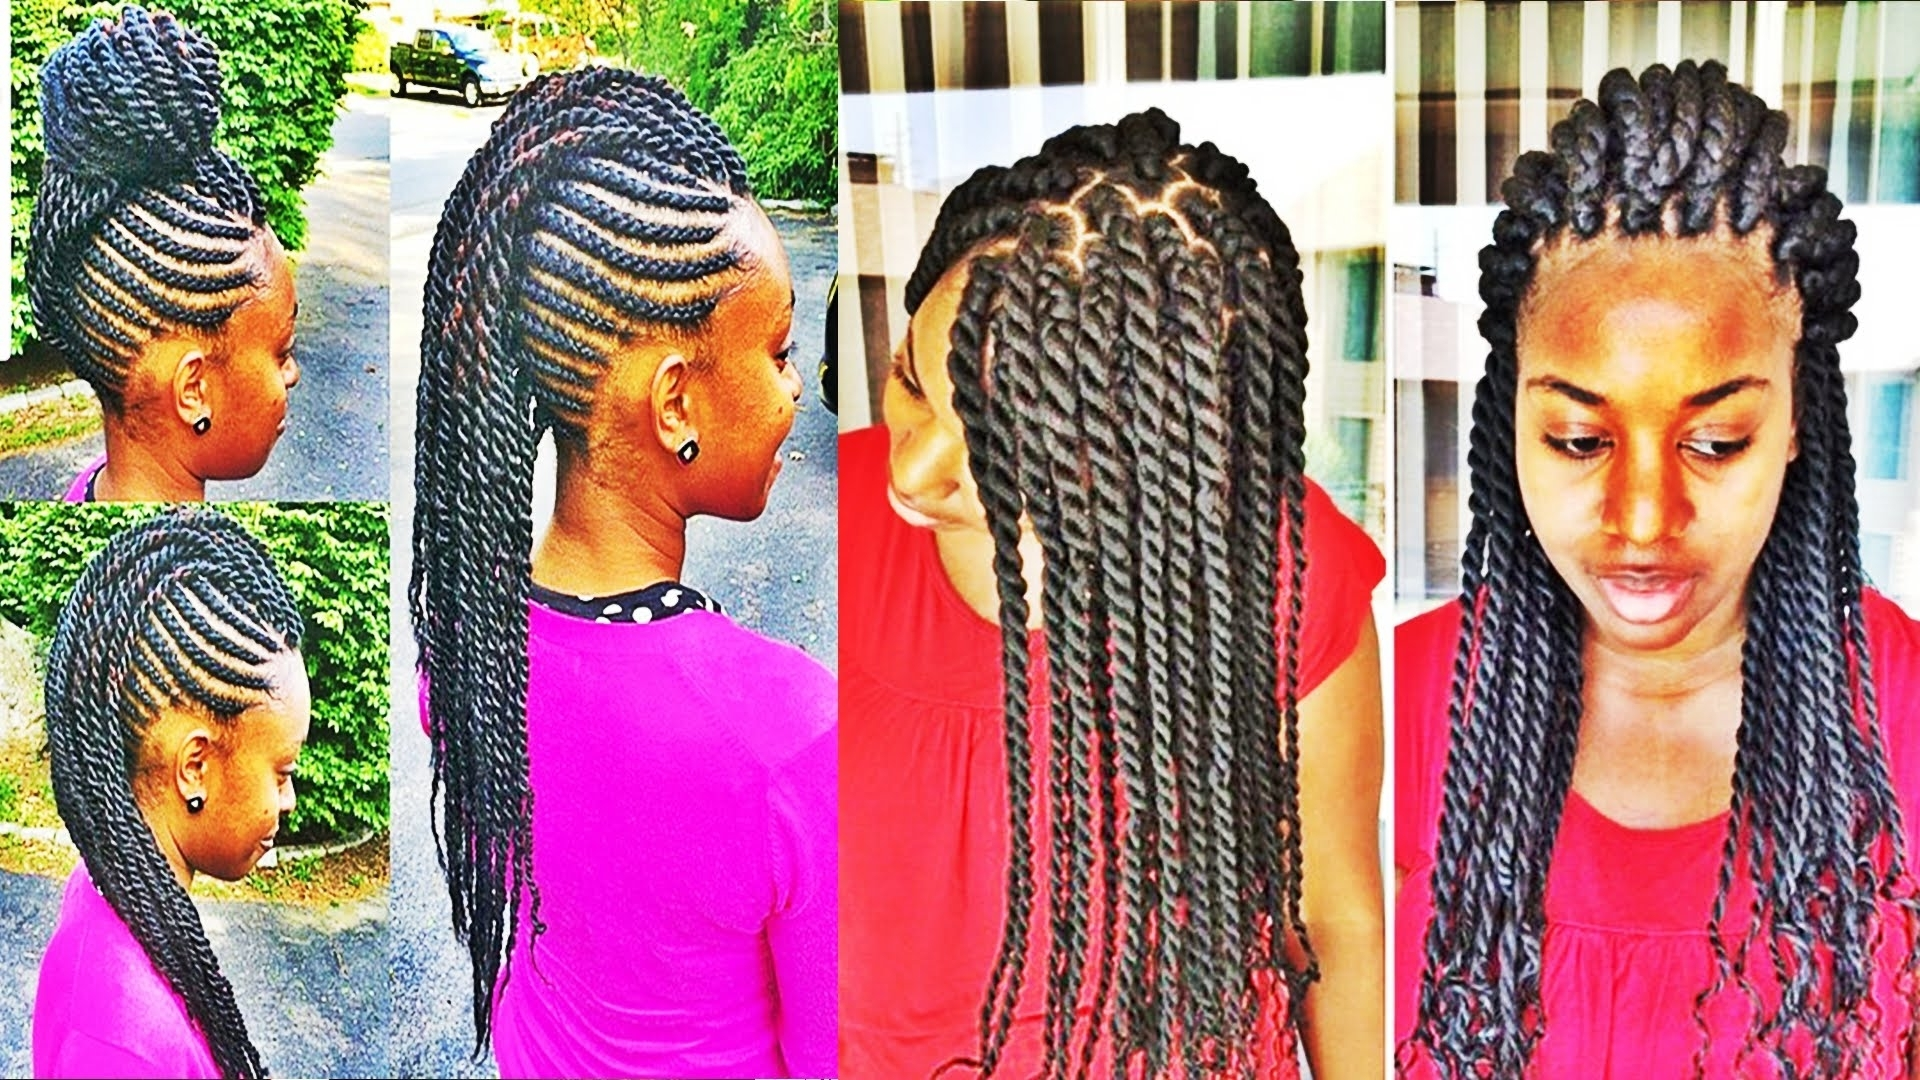 Most Current Braided Hairstyles For African American Hair For Versatile Braids And Twists Hairstyles For African American Womens (View 13 of 15)